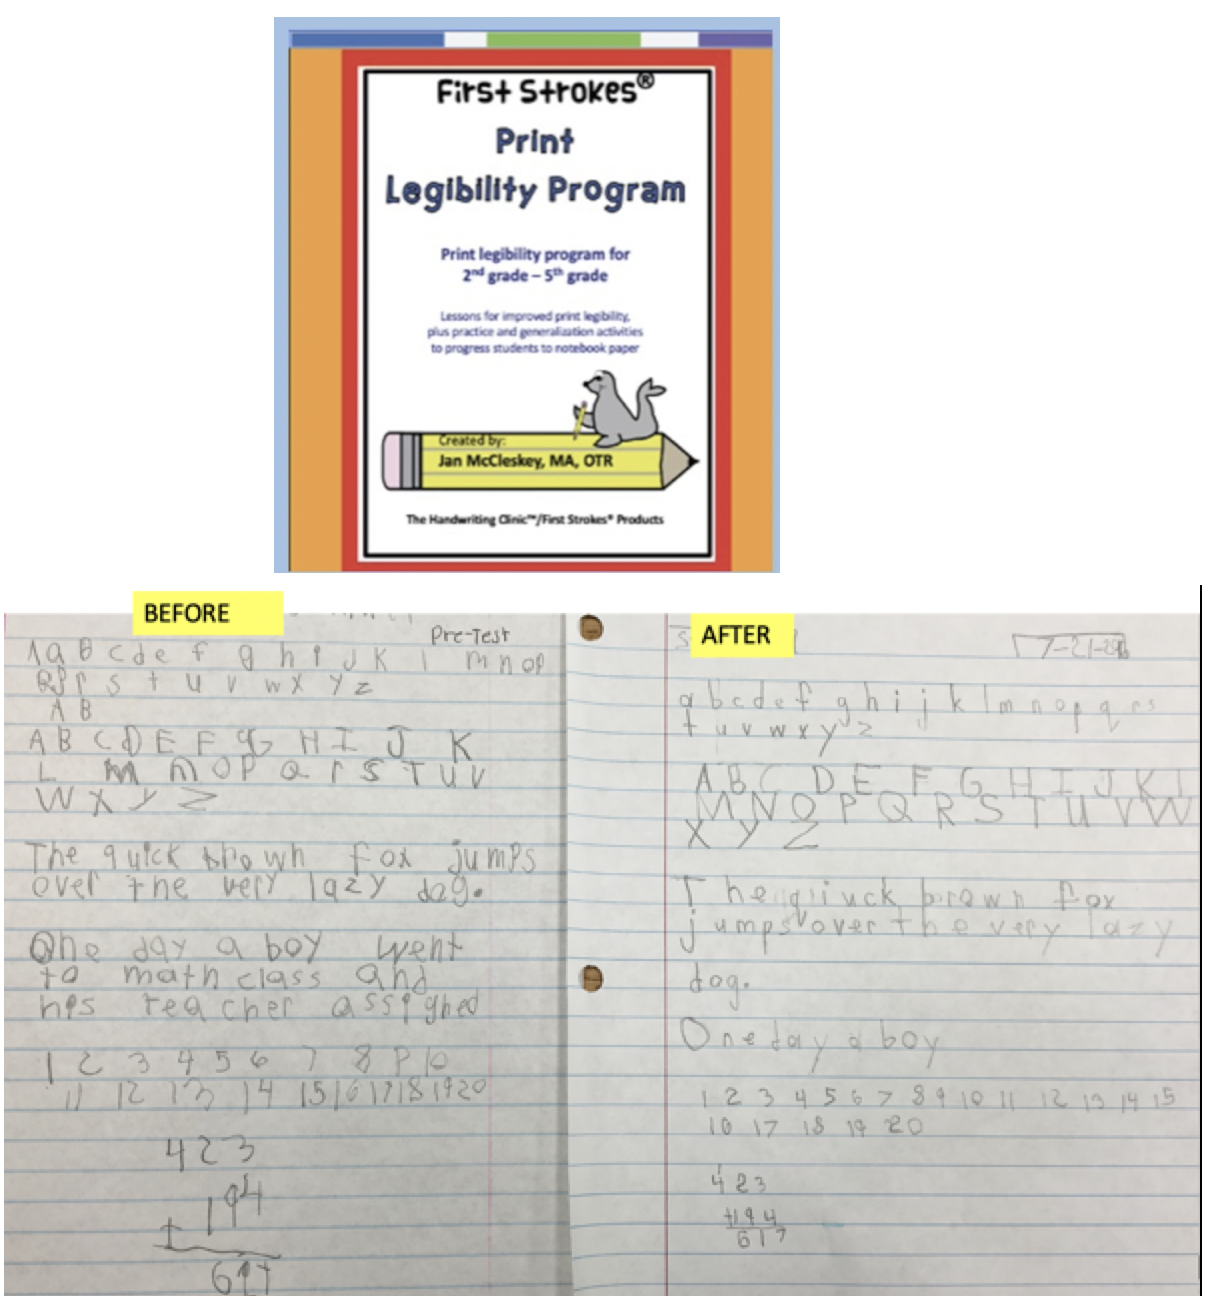 Self Paced Print Legibility Program for 2nd – 5th graders